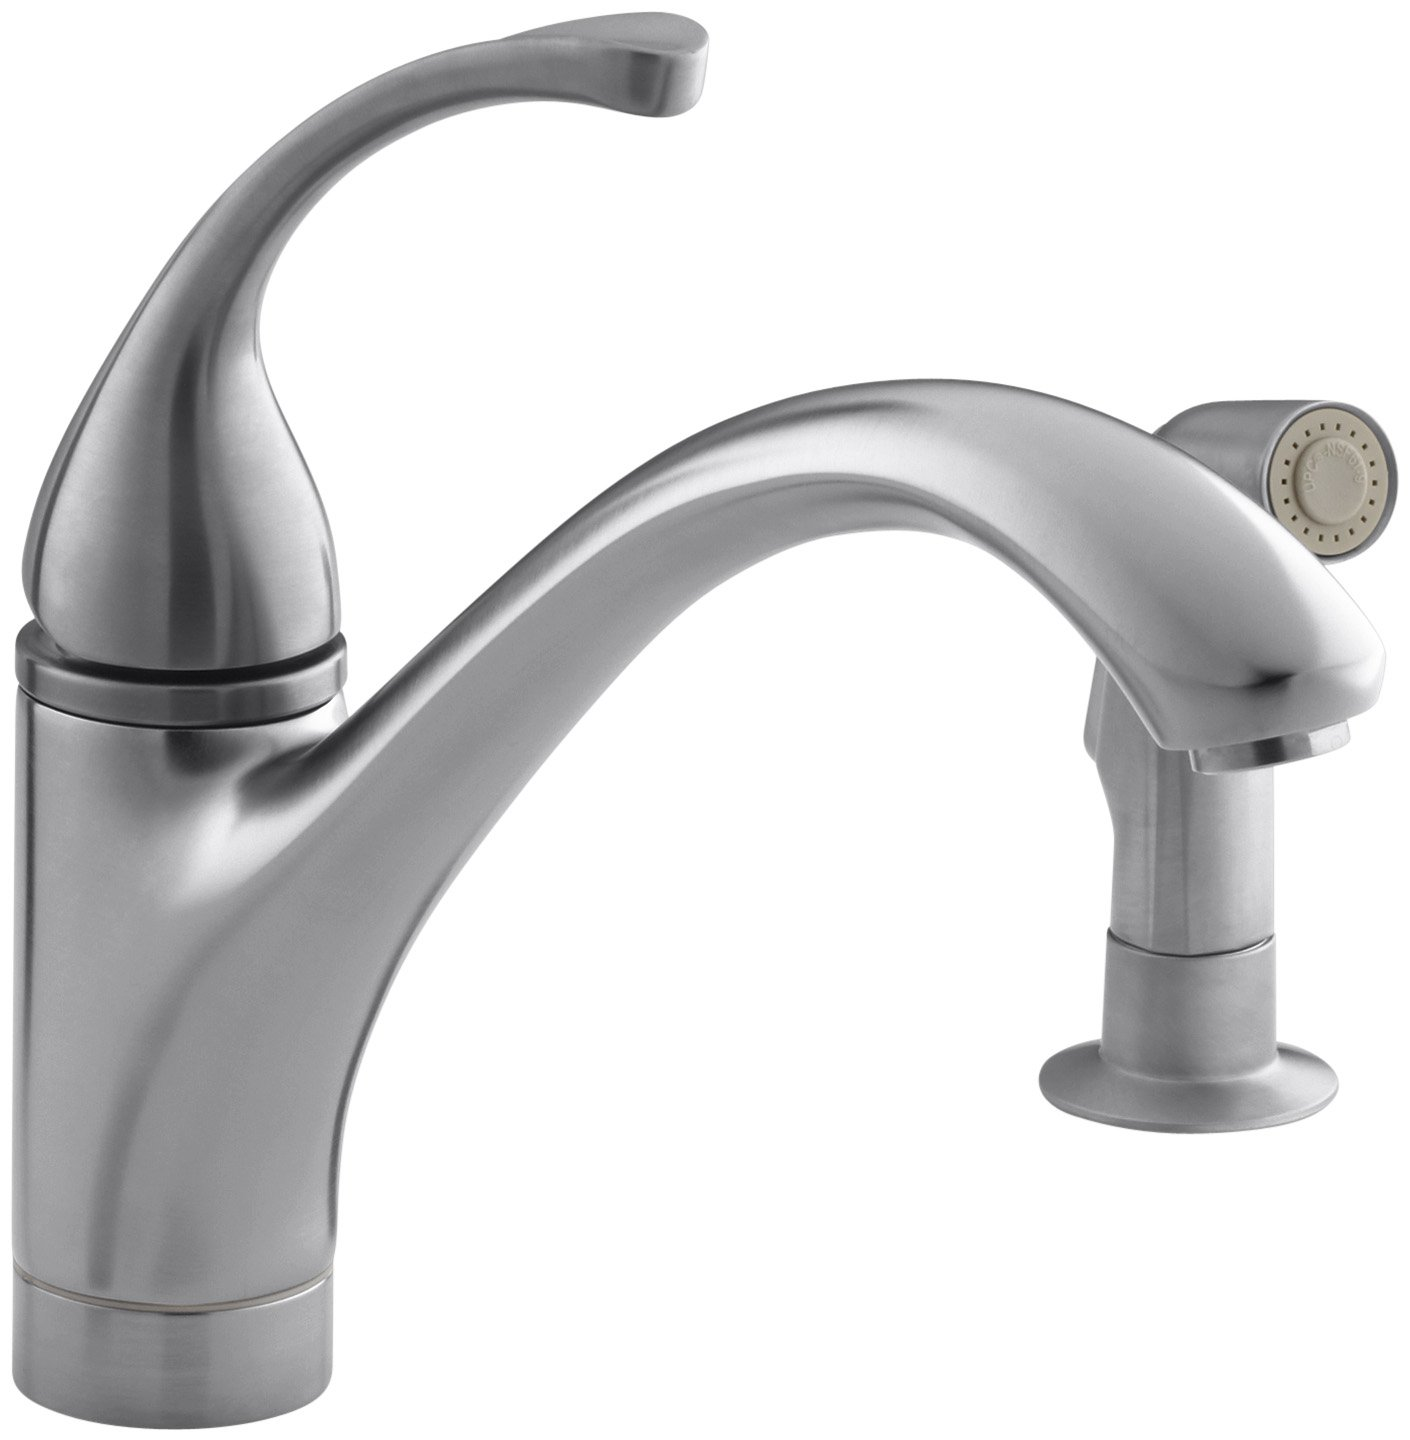 KOHLER K 10416 VS Forte Single Control Kitchen Sink Faucet With Sidespray  And Lever Handle, Vibrant Stainless   Touch On Kitchen Sink Faucets    Amazon.com